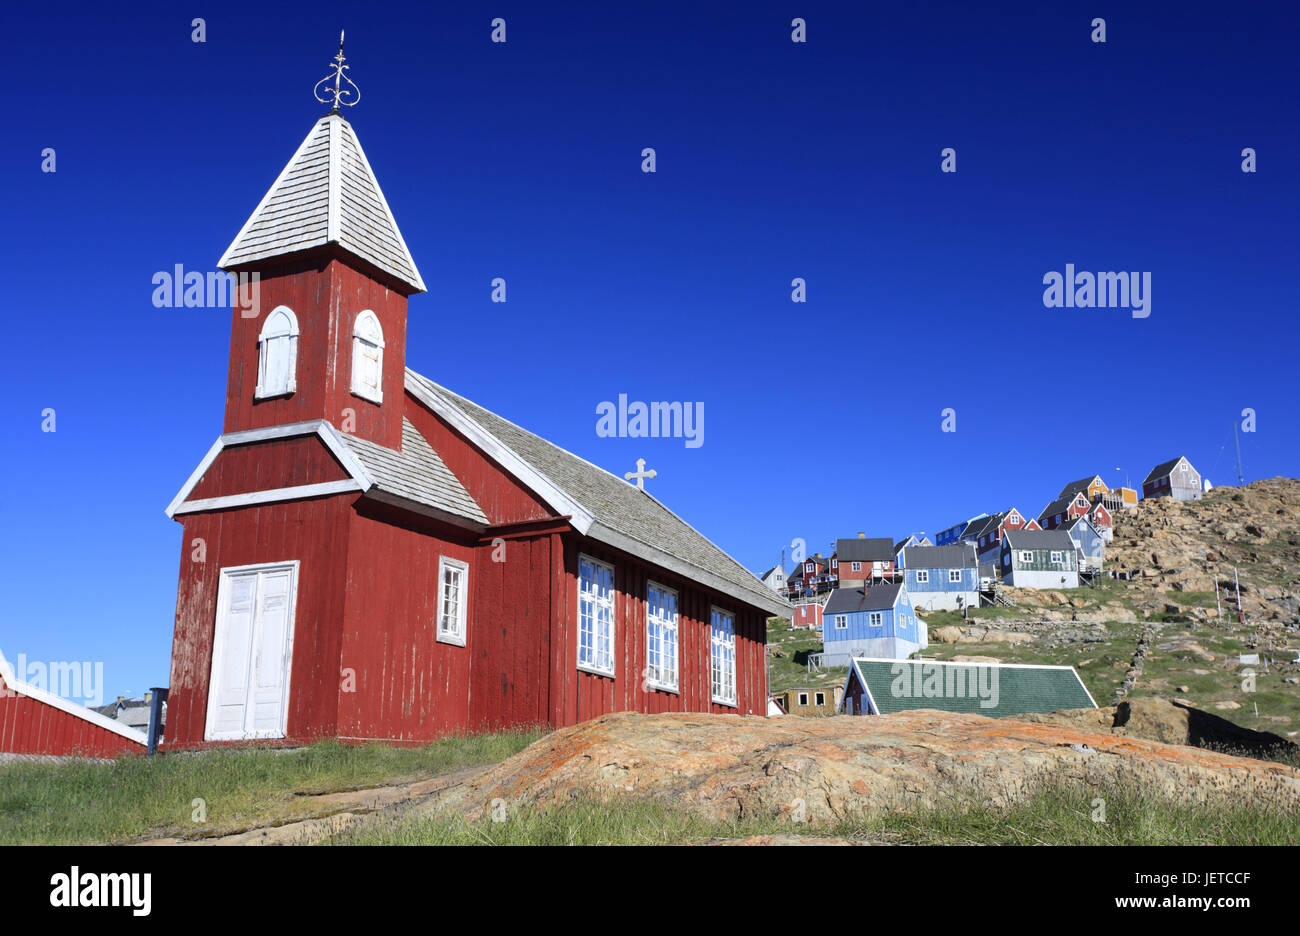 Greenland, Upernavik, town view, residential houses, church, North-Western Greenland, coast, town, the Arctic, houses, - Stock Image